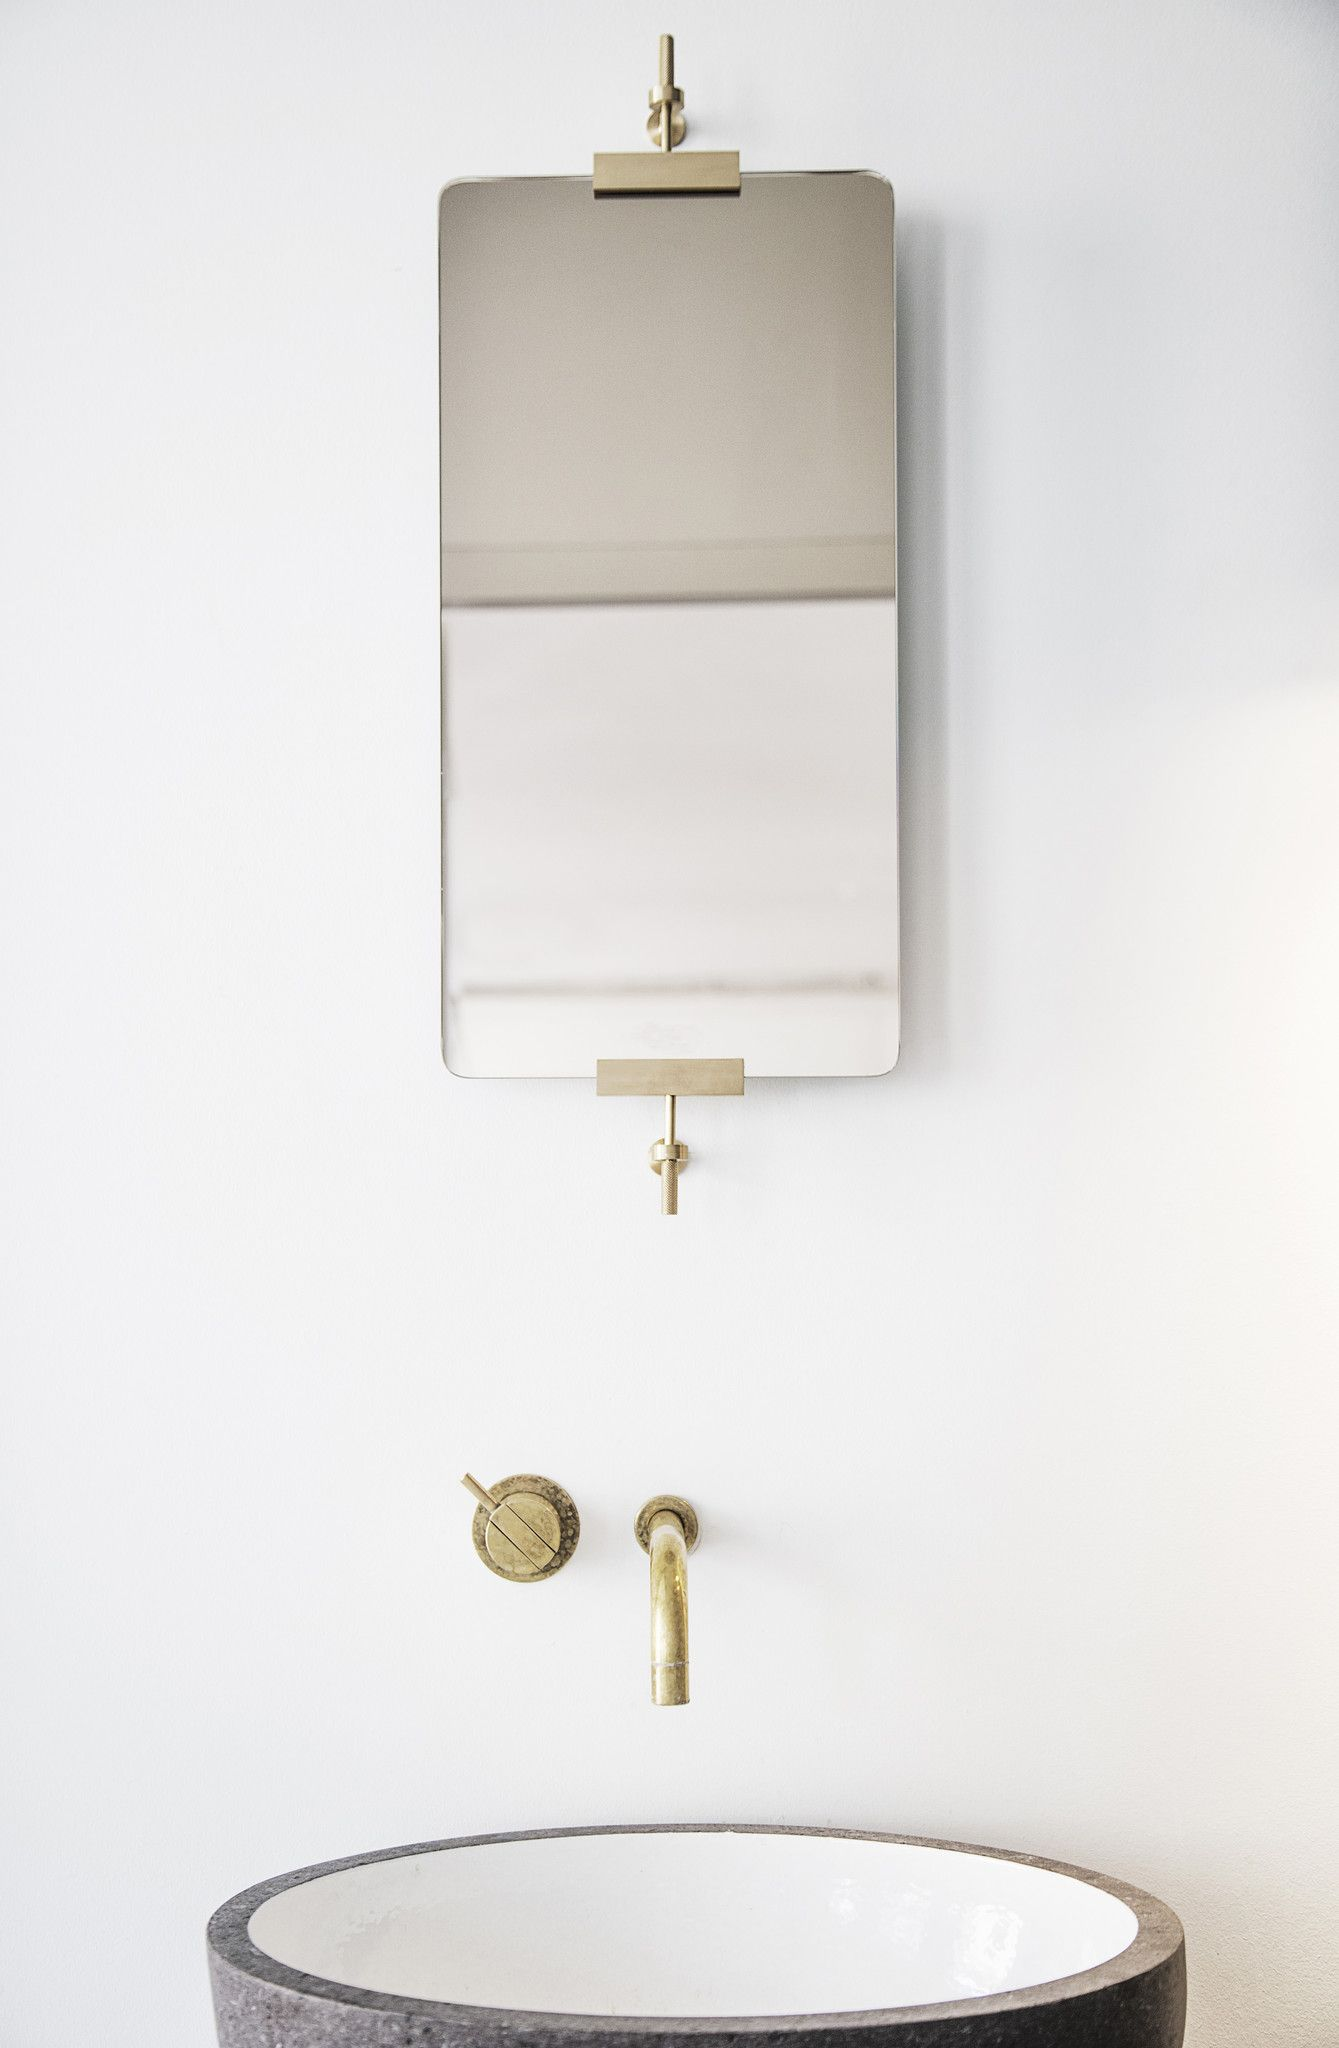 KBH Mirror | Small mirrors, Powder room and Faucet